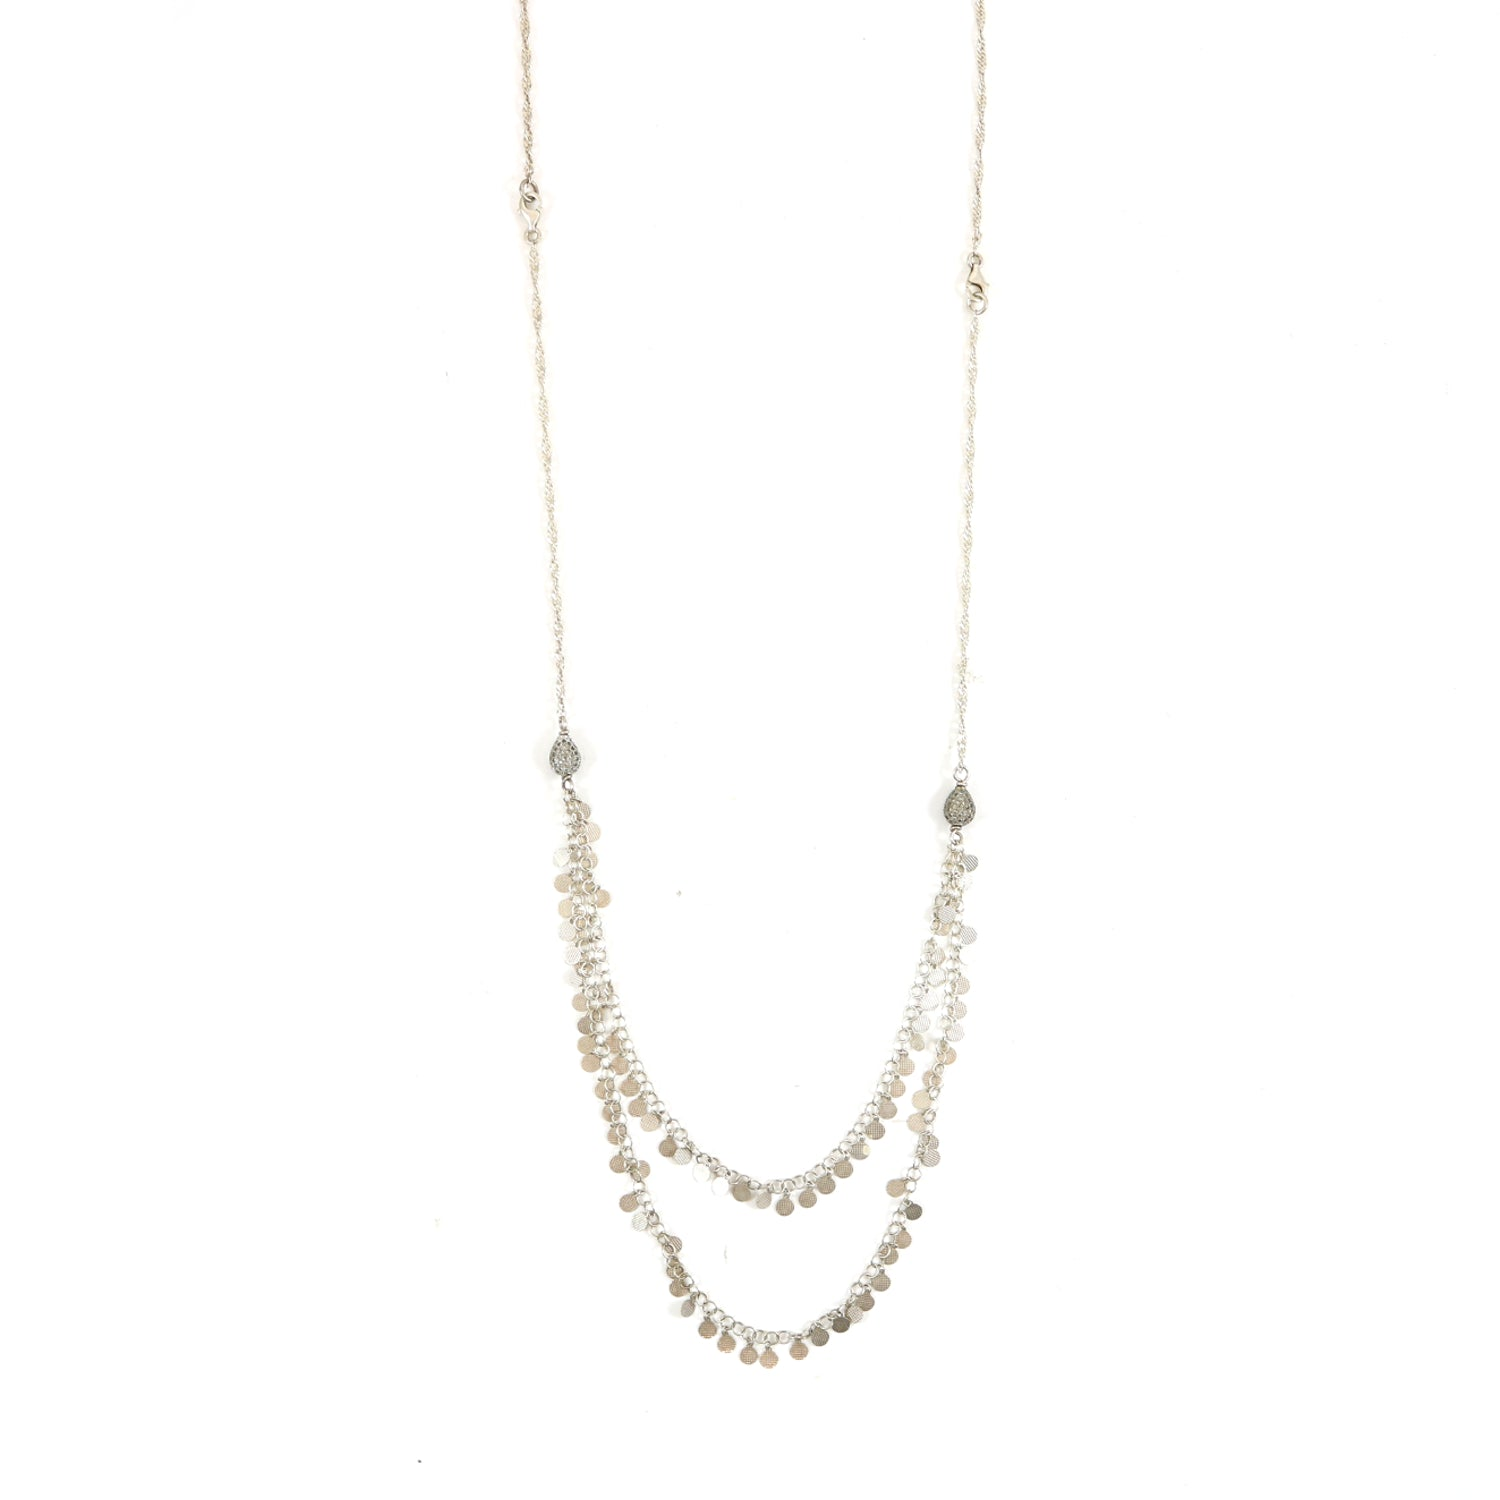 Silver Lariat Necklace